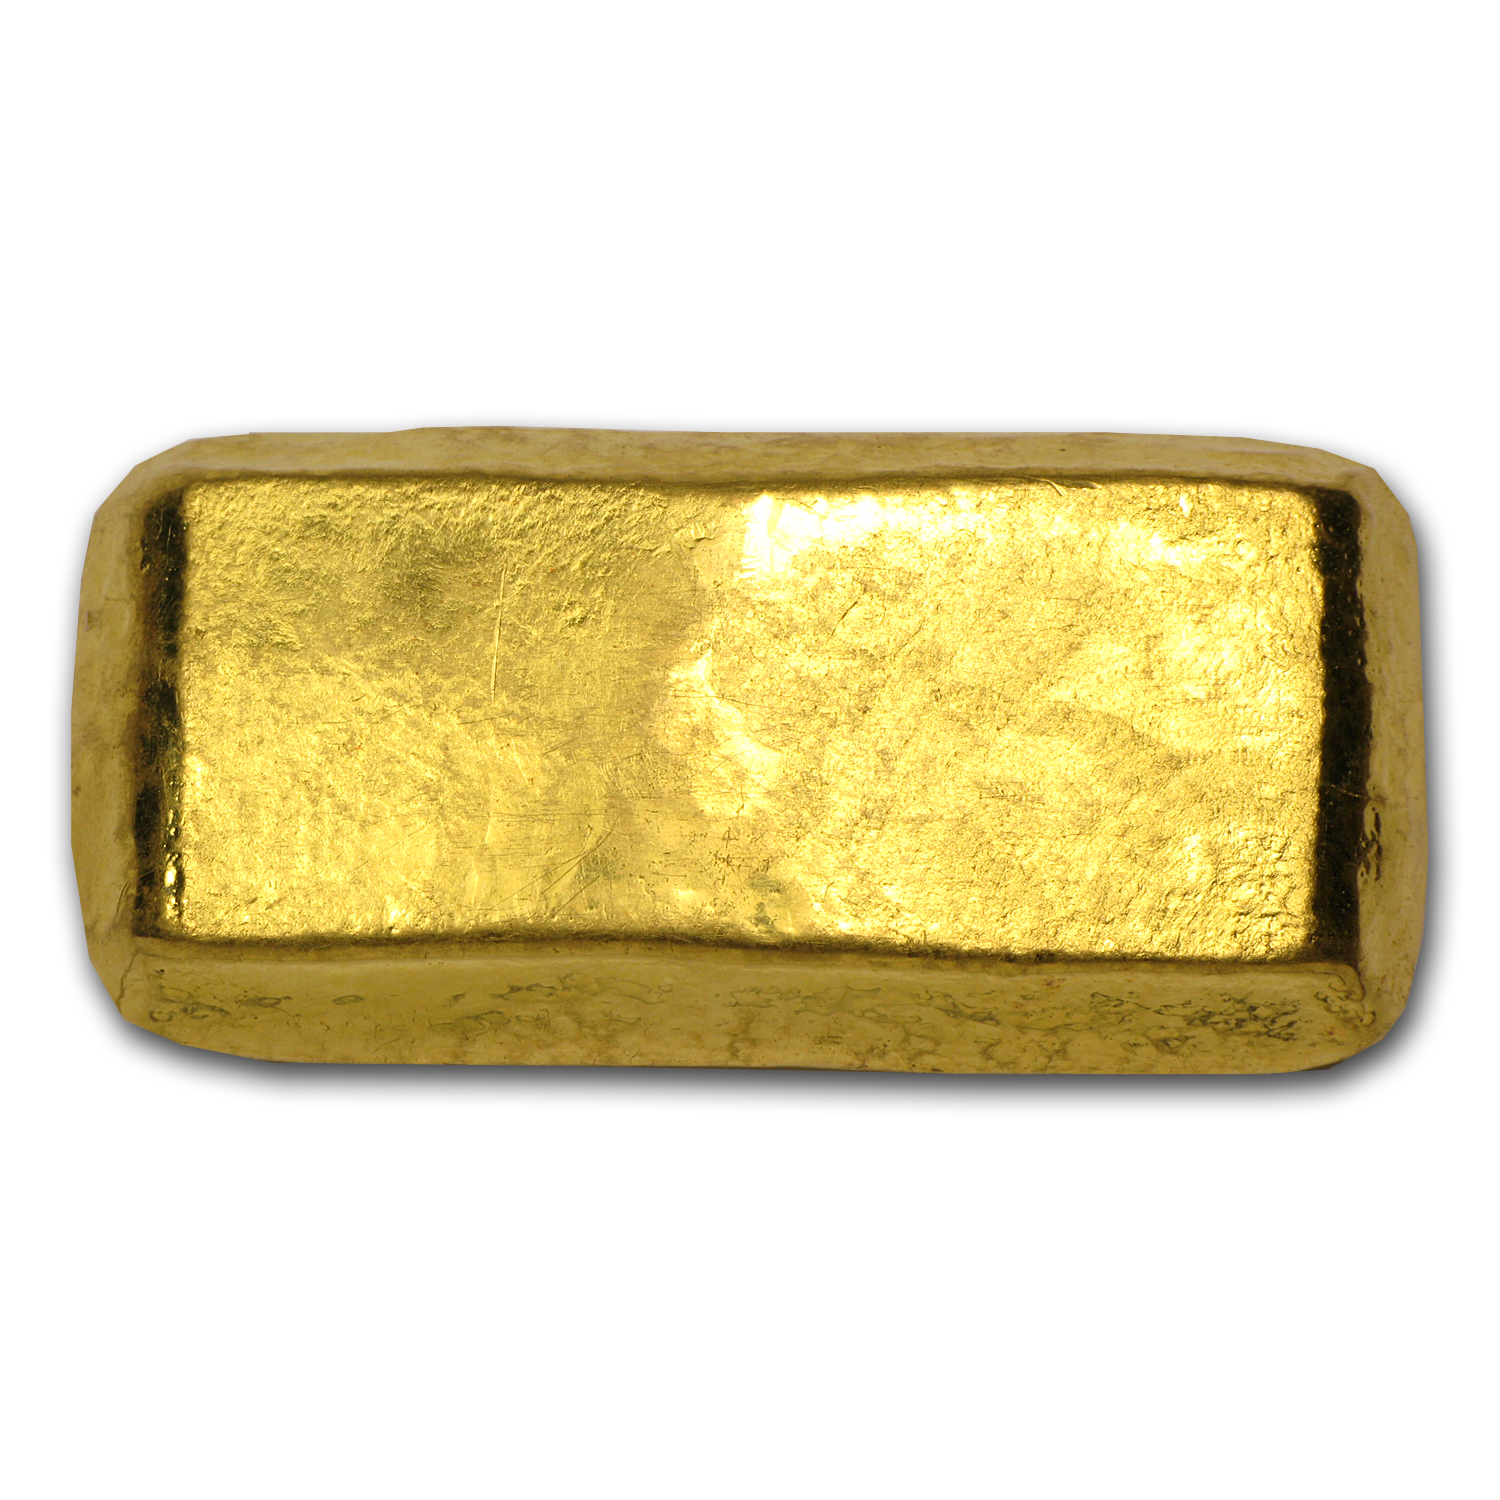 5 oz Gold Bars - Phoenix Precious Metals